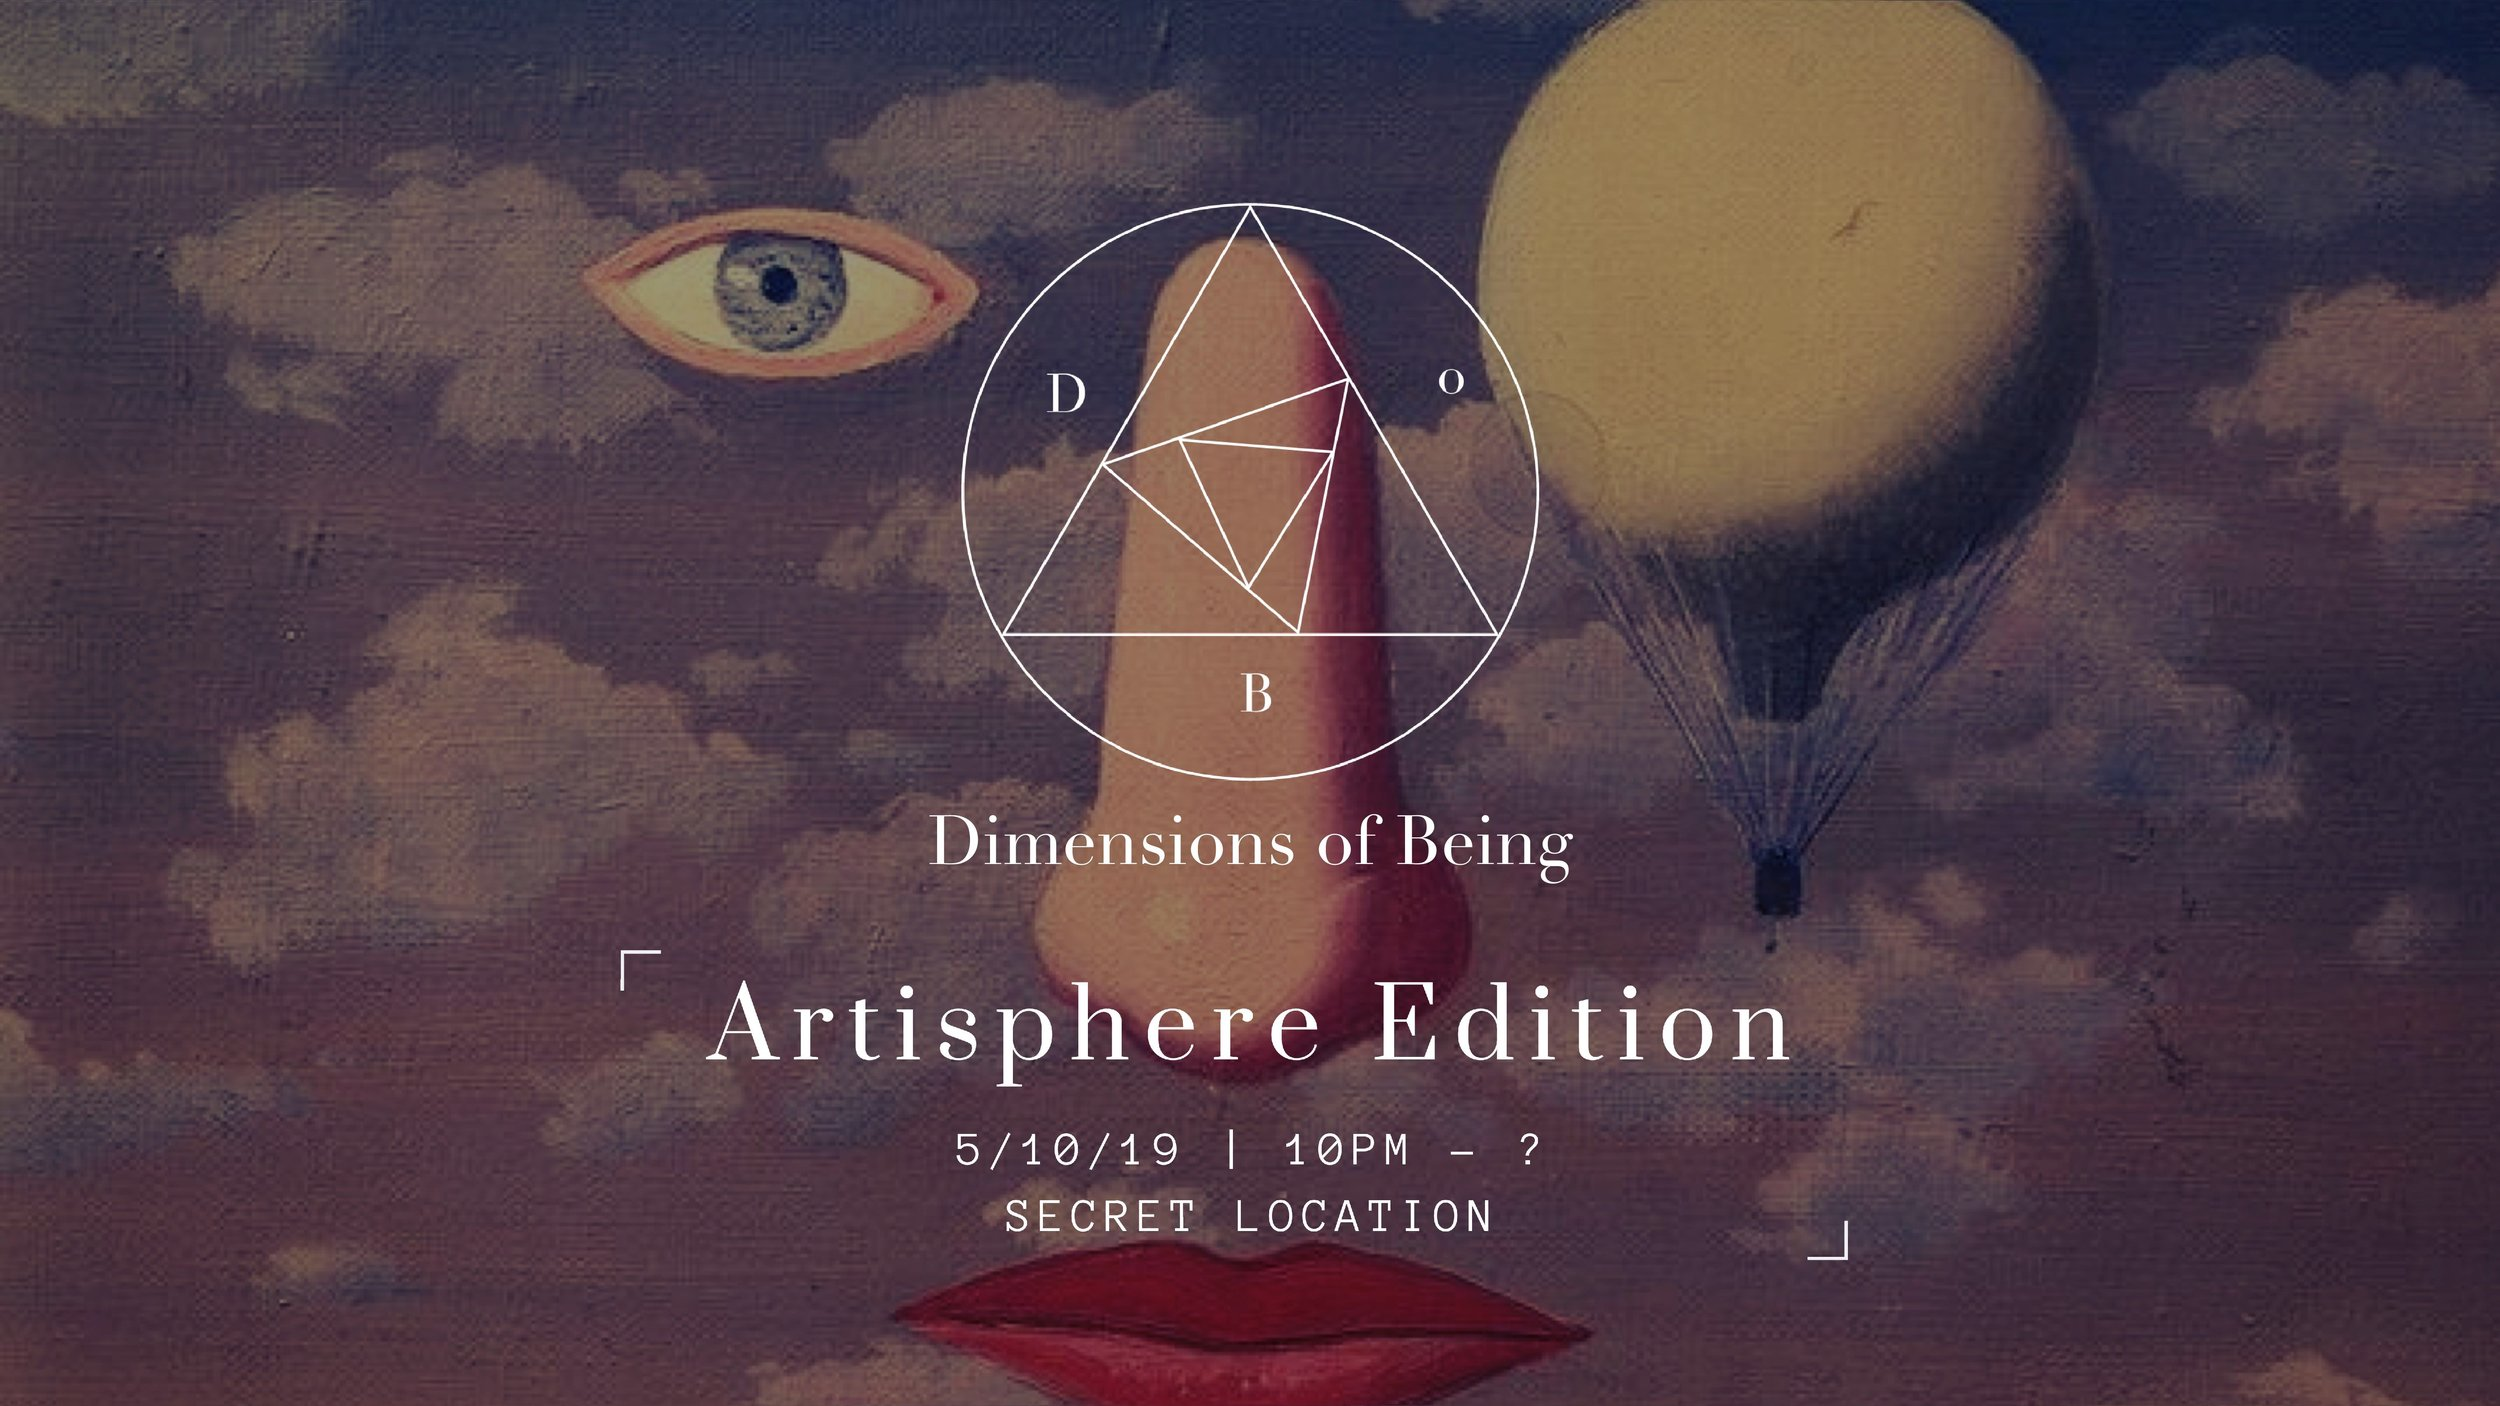 Dimensions of Being | Artisphere Edition 2019Welcome to an exploration through sound, light, and vibration with the intention of discovering and understanding the dimensions of our being. We are excited to present the first incarnation of our annual Artisphere Afterparty in Greenville. This is a yearly gathering in celebration of Art and it's effect on our beings and lives. We have art and a line up you will have to discover for your self. We hope you will explore with us 👁 -